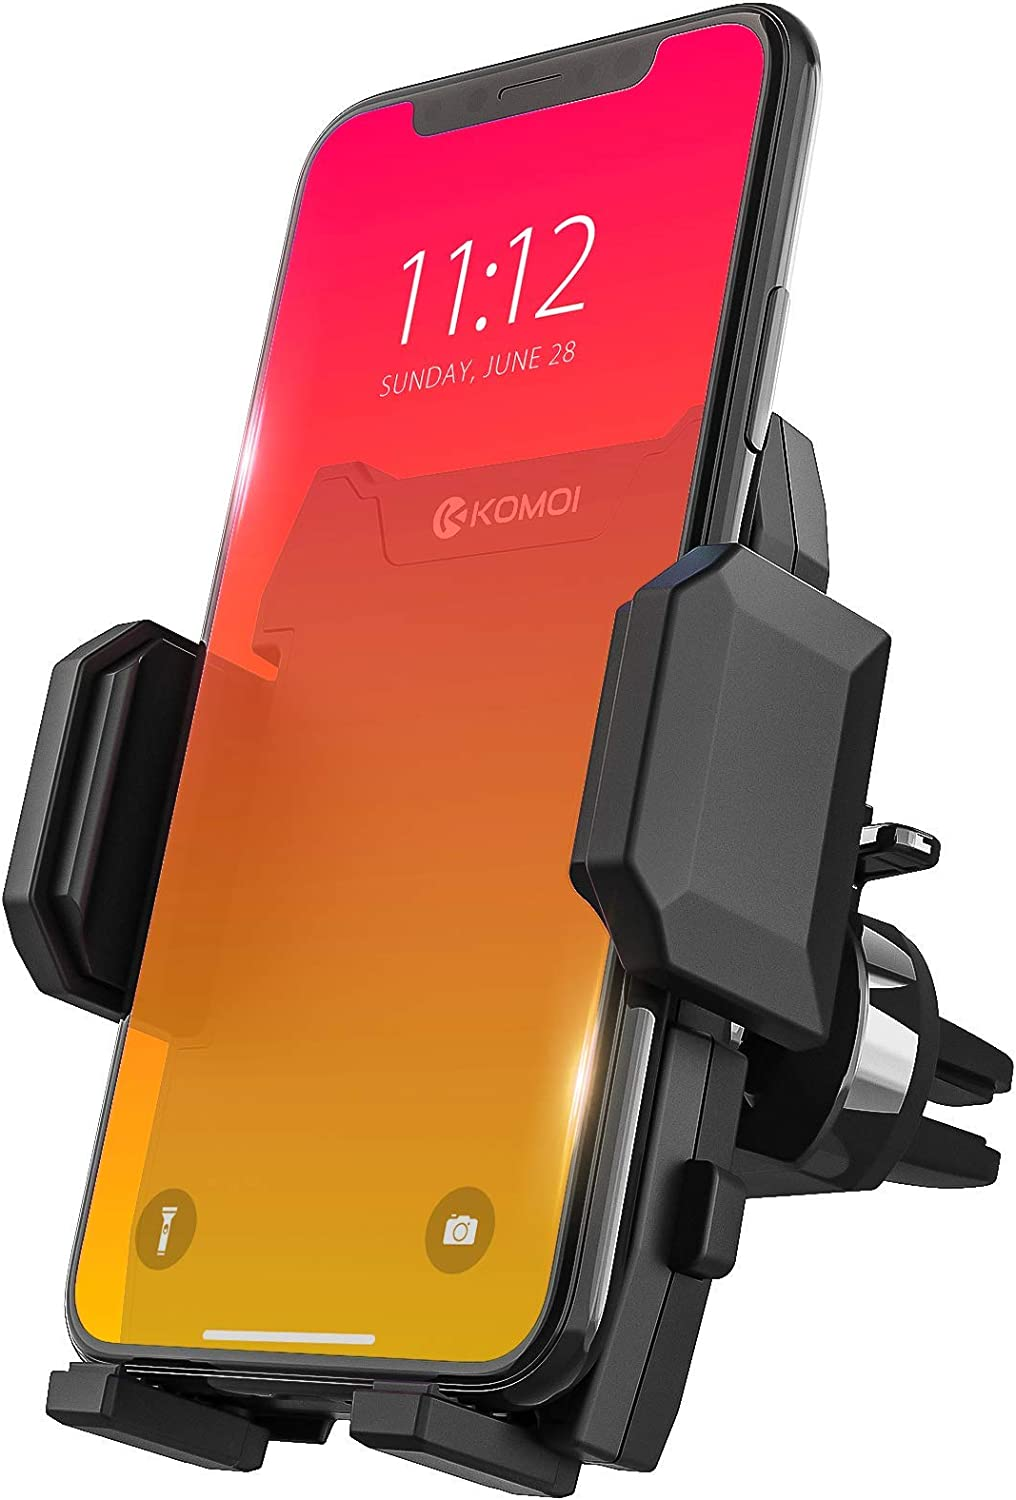 Car Cellphone Air Vent Mount Holder Stand Clip Cradle 360/° Rotation Universal Vehicle Hands-Free Easy Clamp Compatible with Apple iPhone Samsung Galaxy LG Google Pixel Pokanic Air Vent Mount